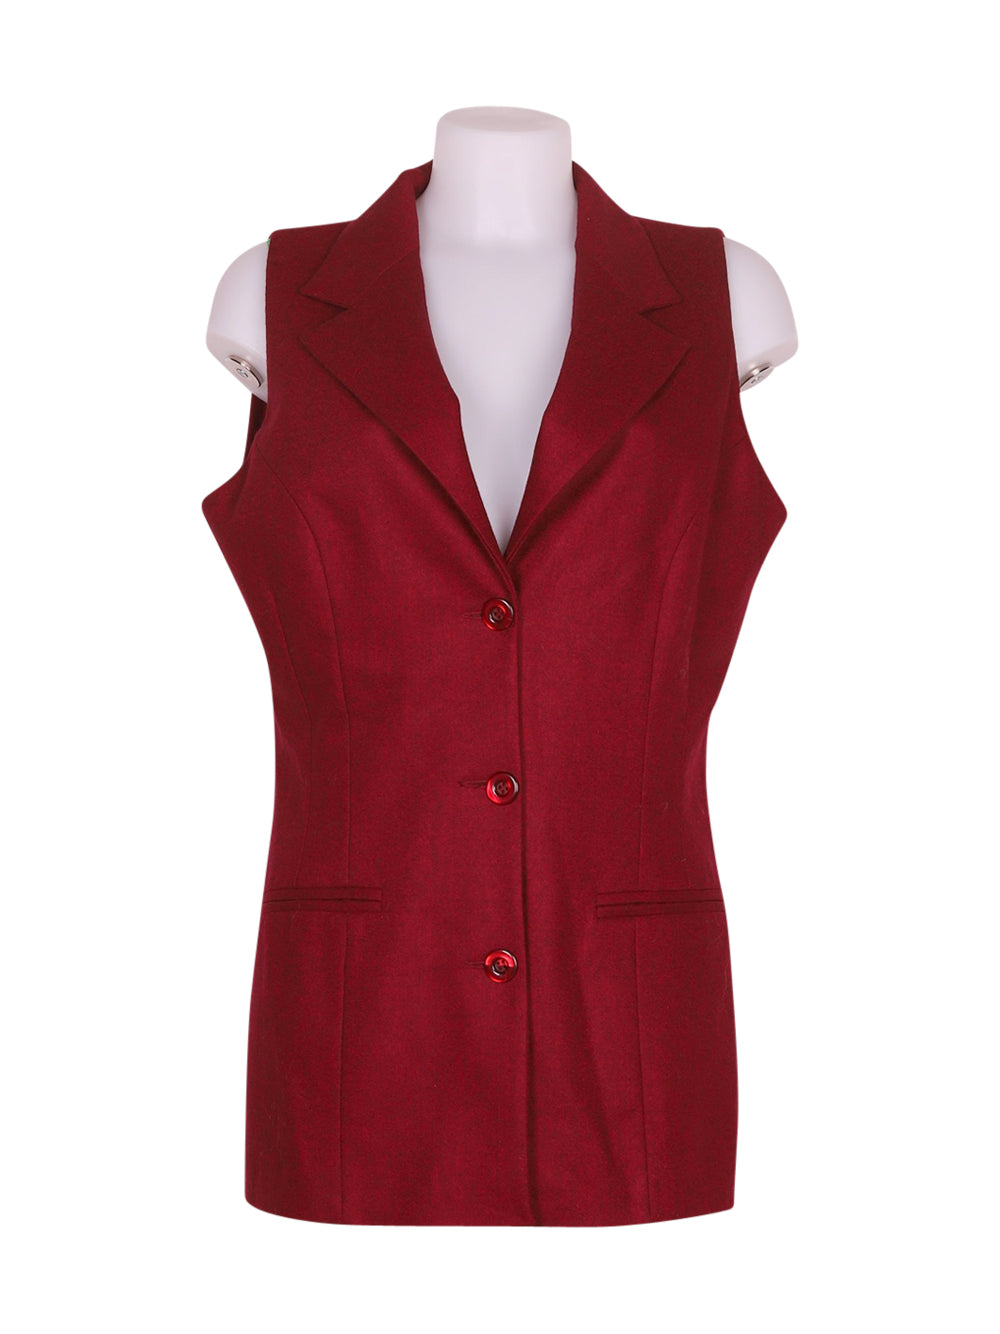 Front photo of Preloved Pura lana Bordeaux Woman's waistcoat - size 16/XXL